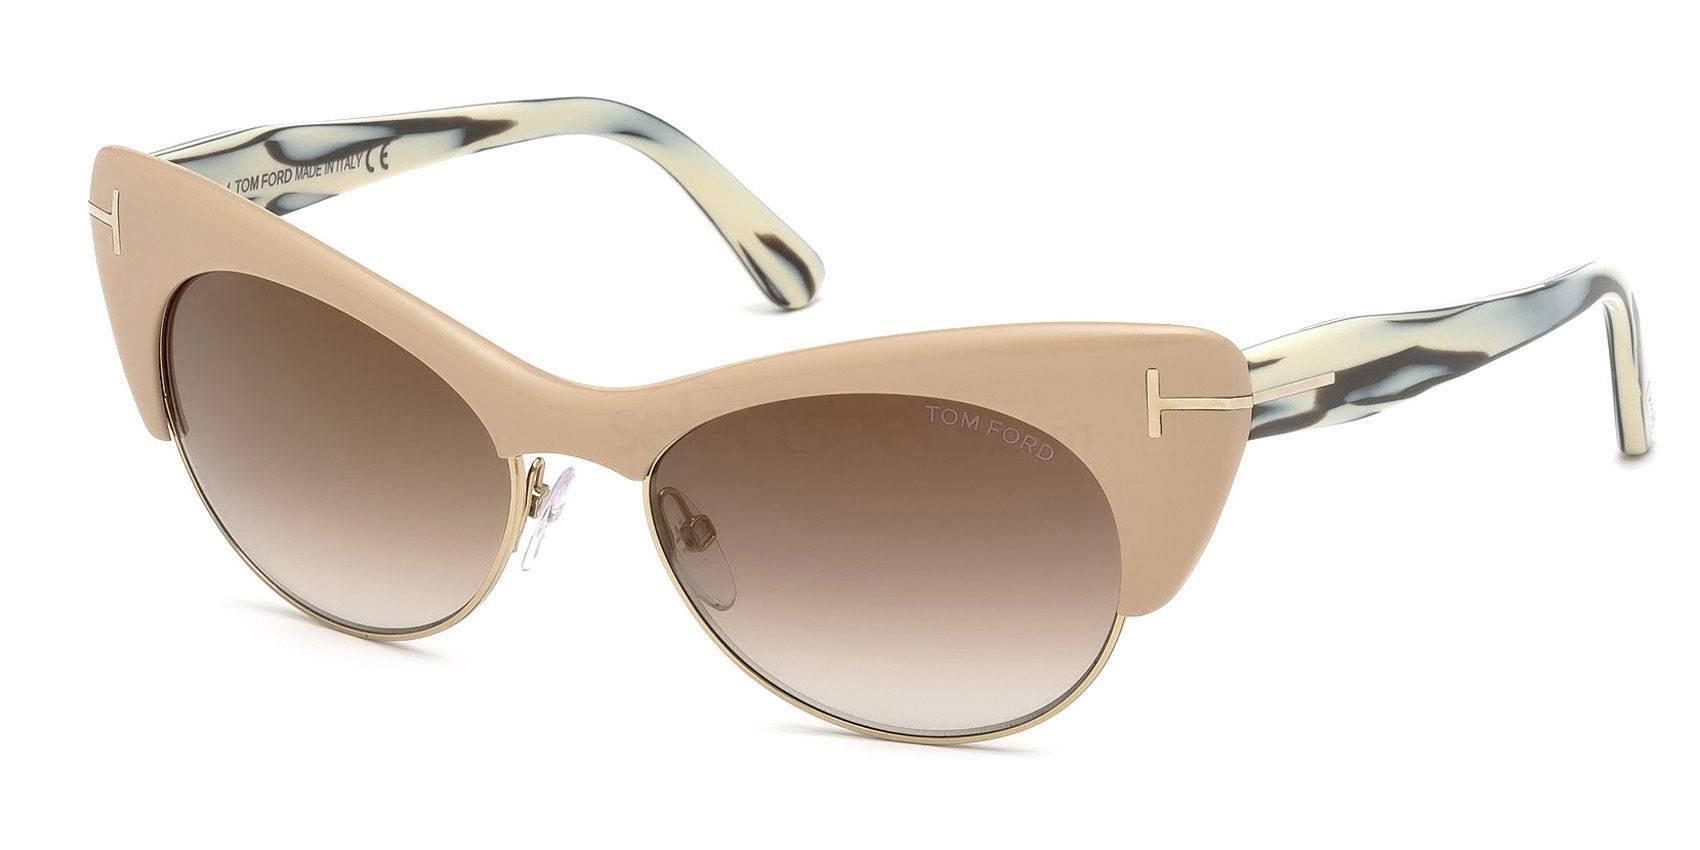 Tom Ford FT0387 sunglasses at SelectSpecs